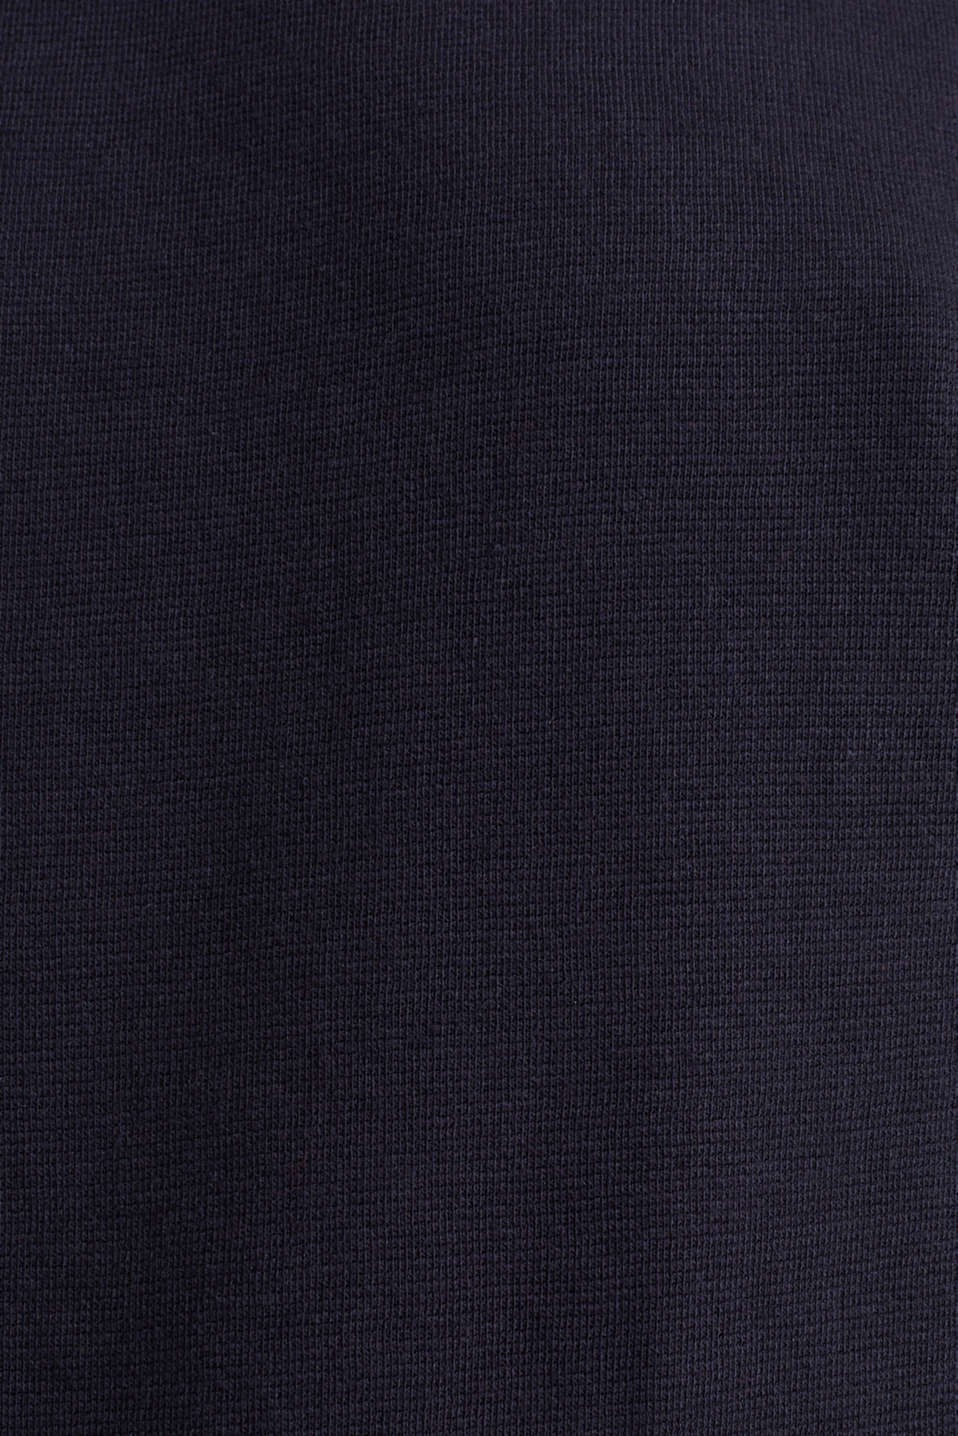 Sweatshirt with striped cuffs, NAVY, detail image number 4